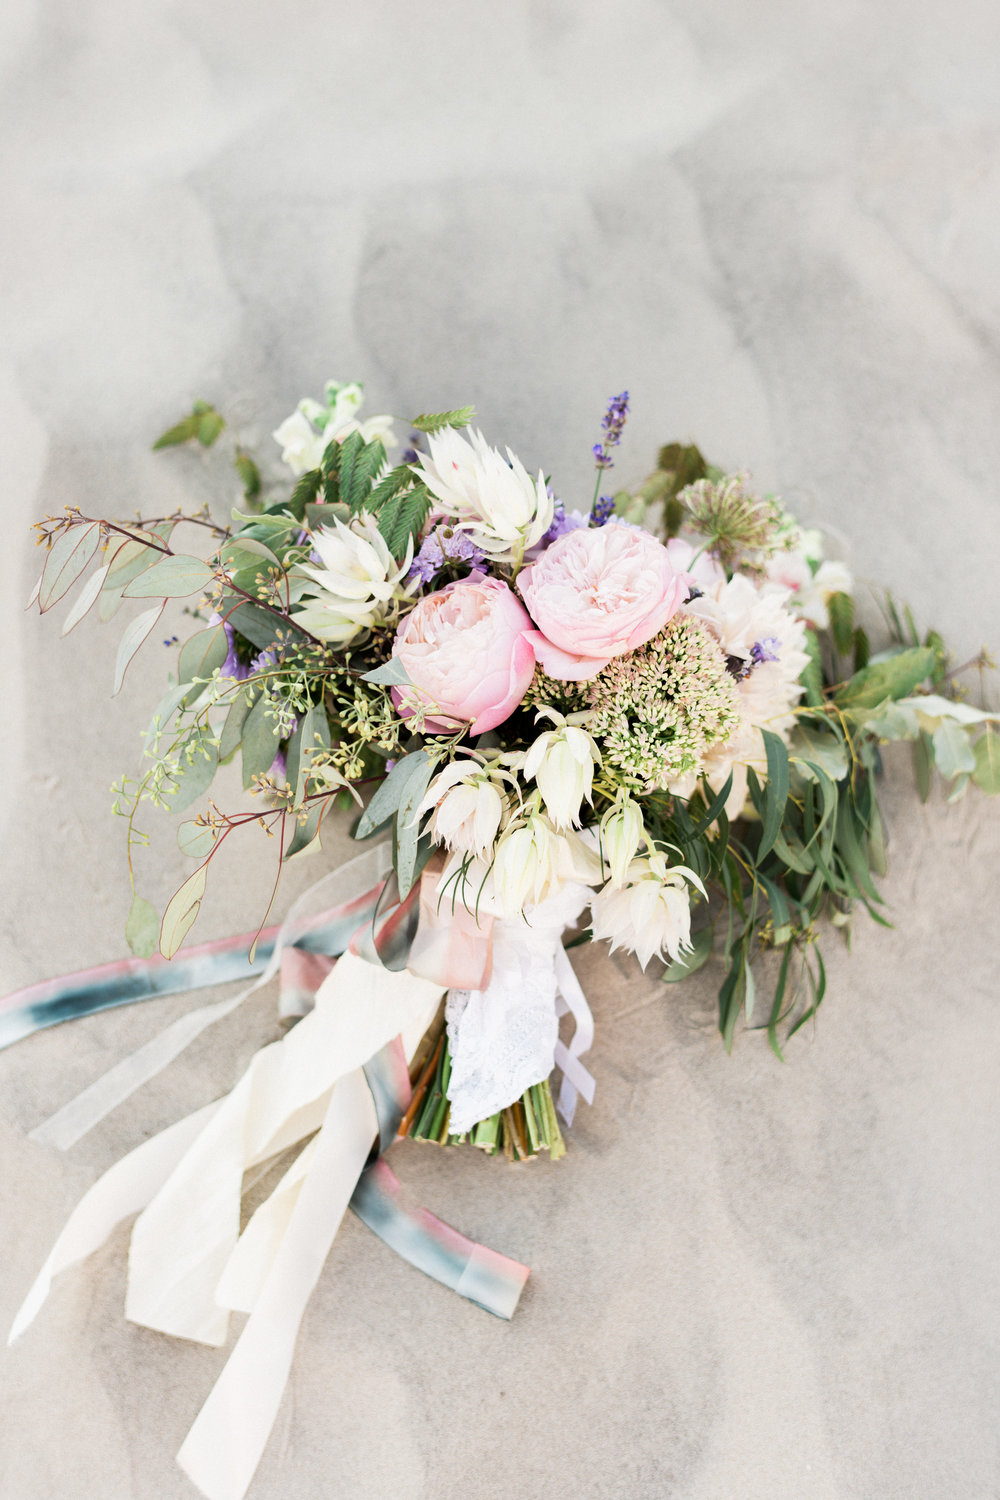 Organic Florals by A Garden Party photographed by NJ Wedding Photographer